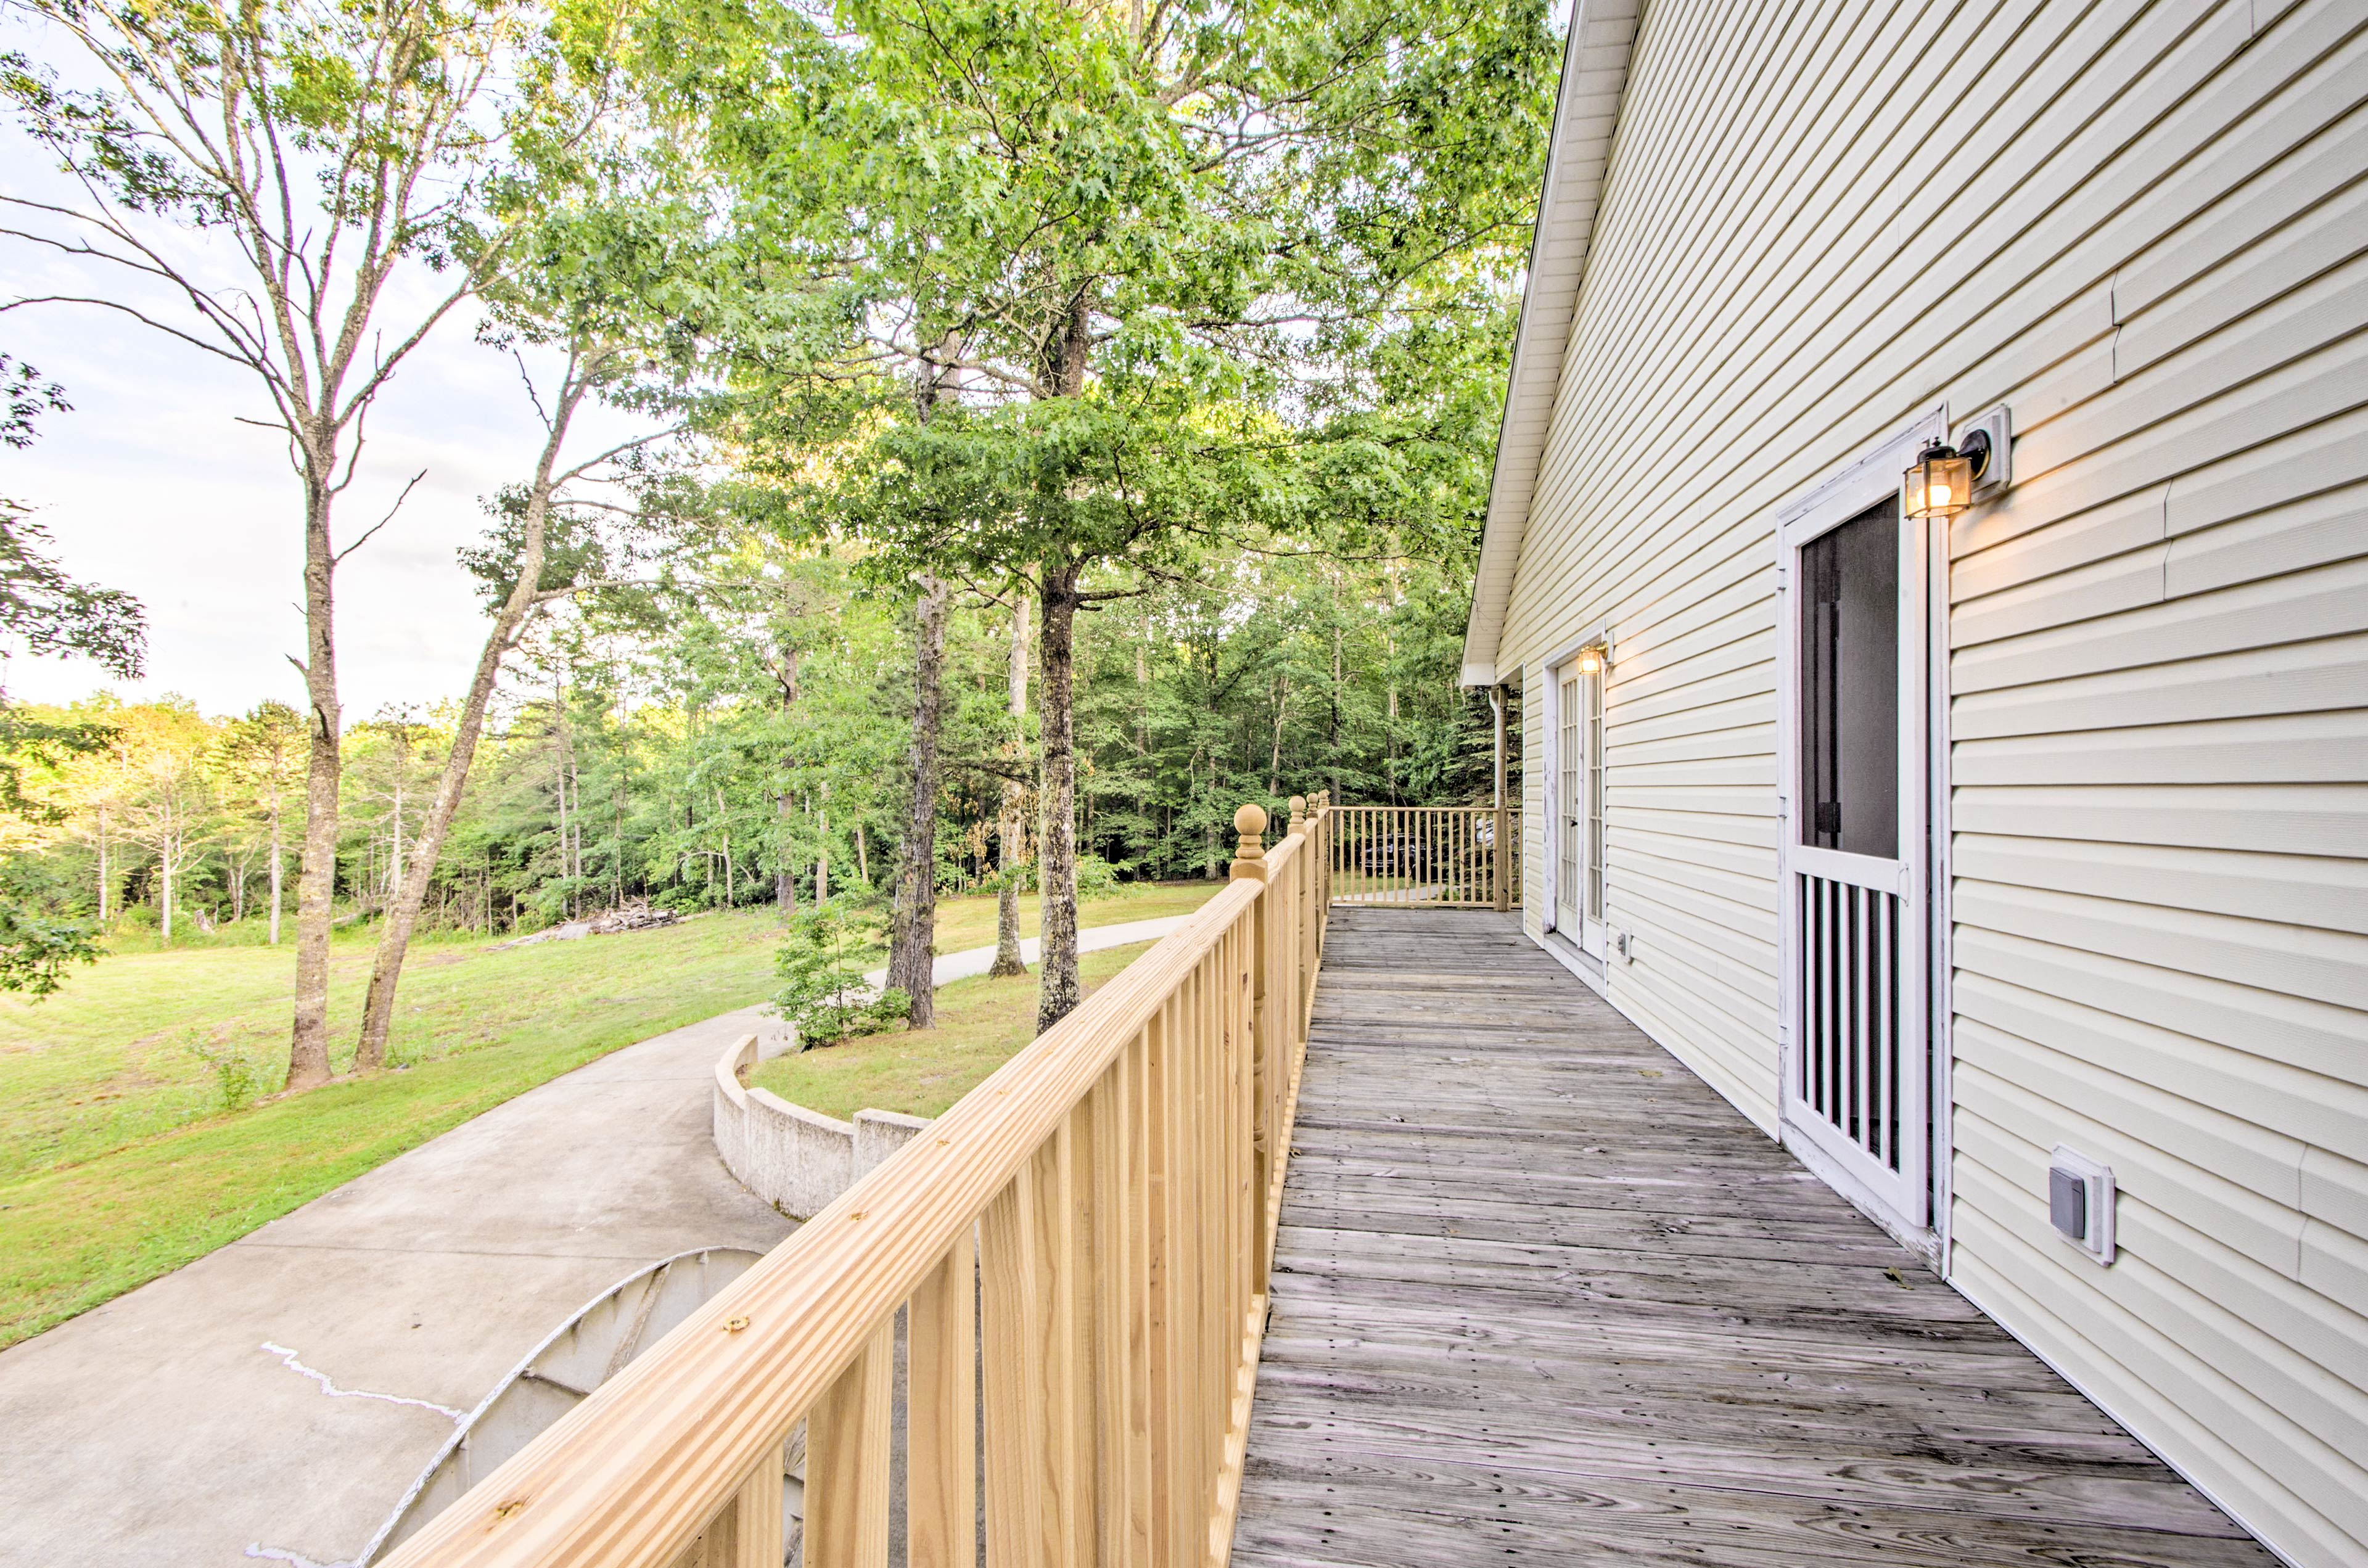 The deck wraps around the side of the house to overlook the rolling hills.